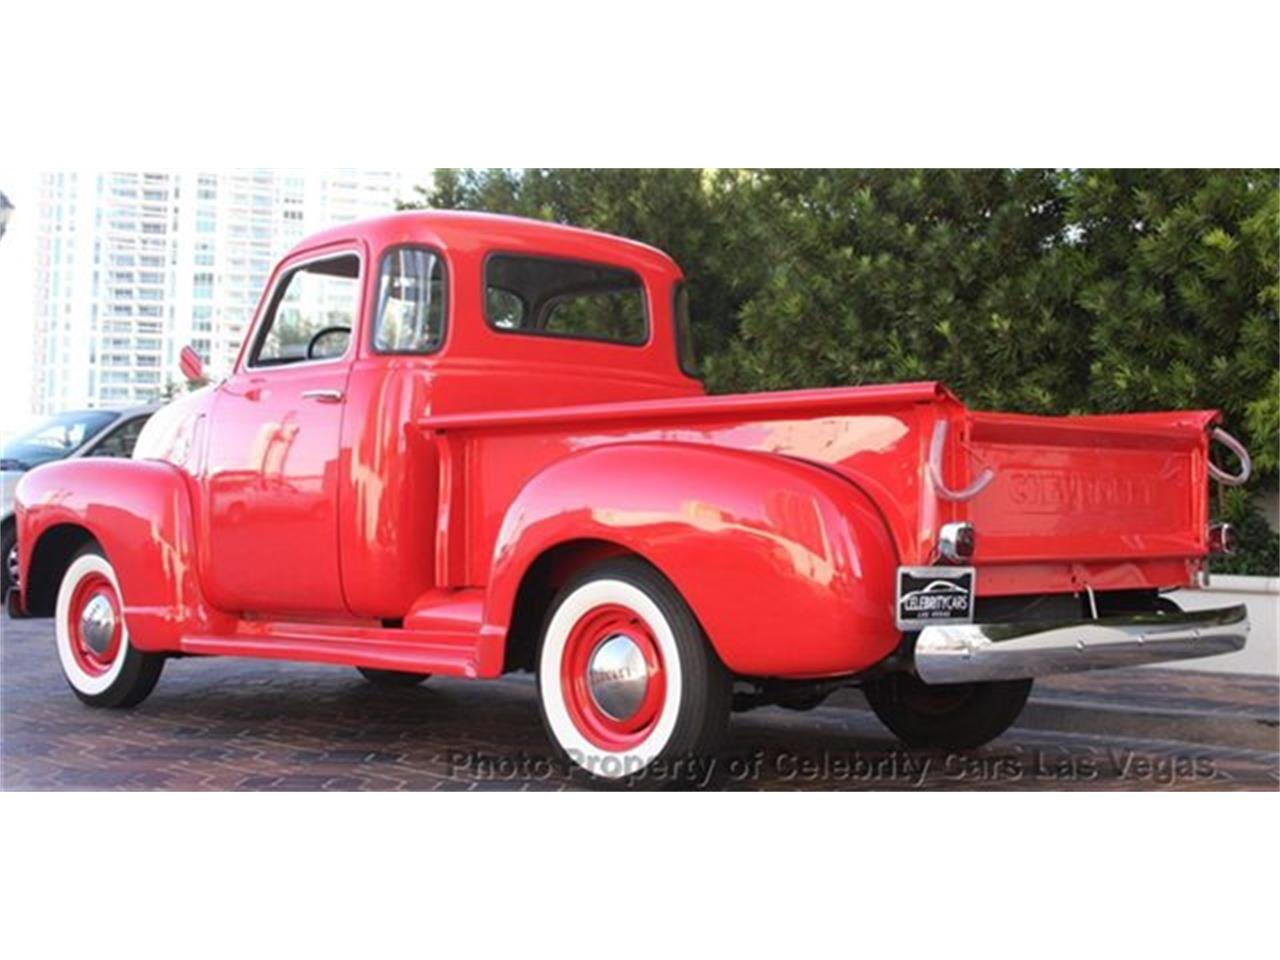 Large Picture of Classic '50 3100 - $27,100.00 Offered by Celebrity Cars Las Vegas - CZHB